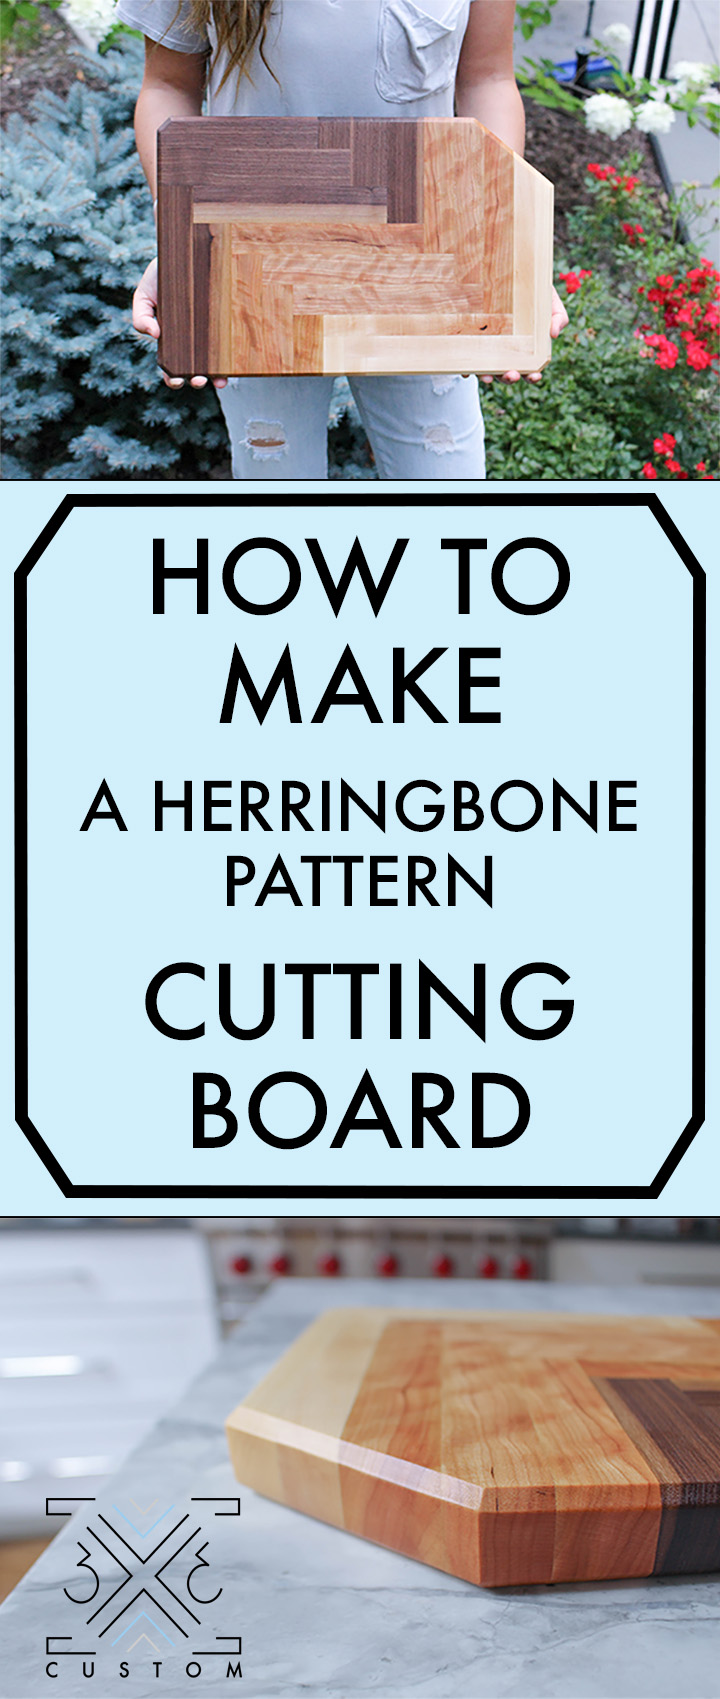 Herringbone for pinterest.jpg